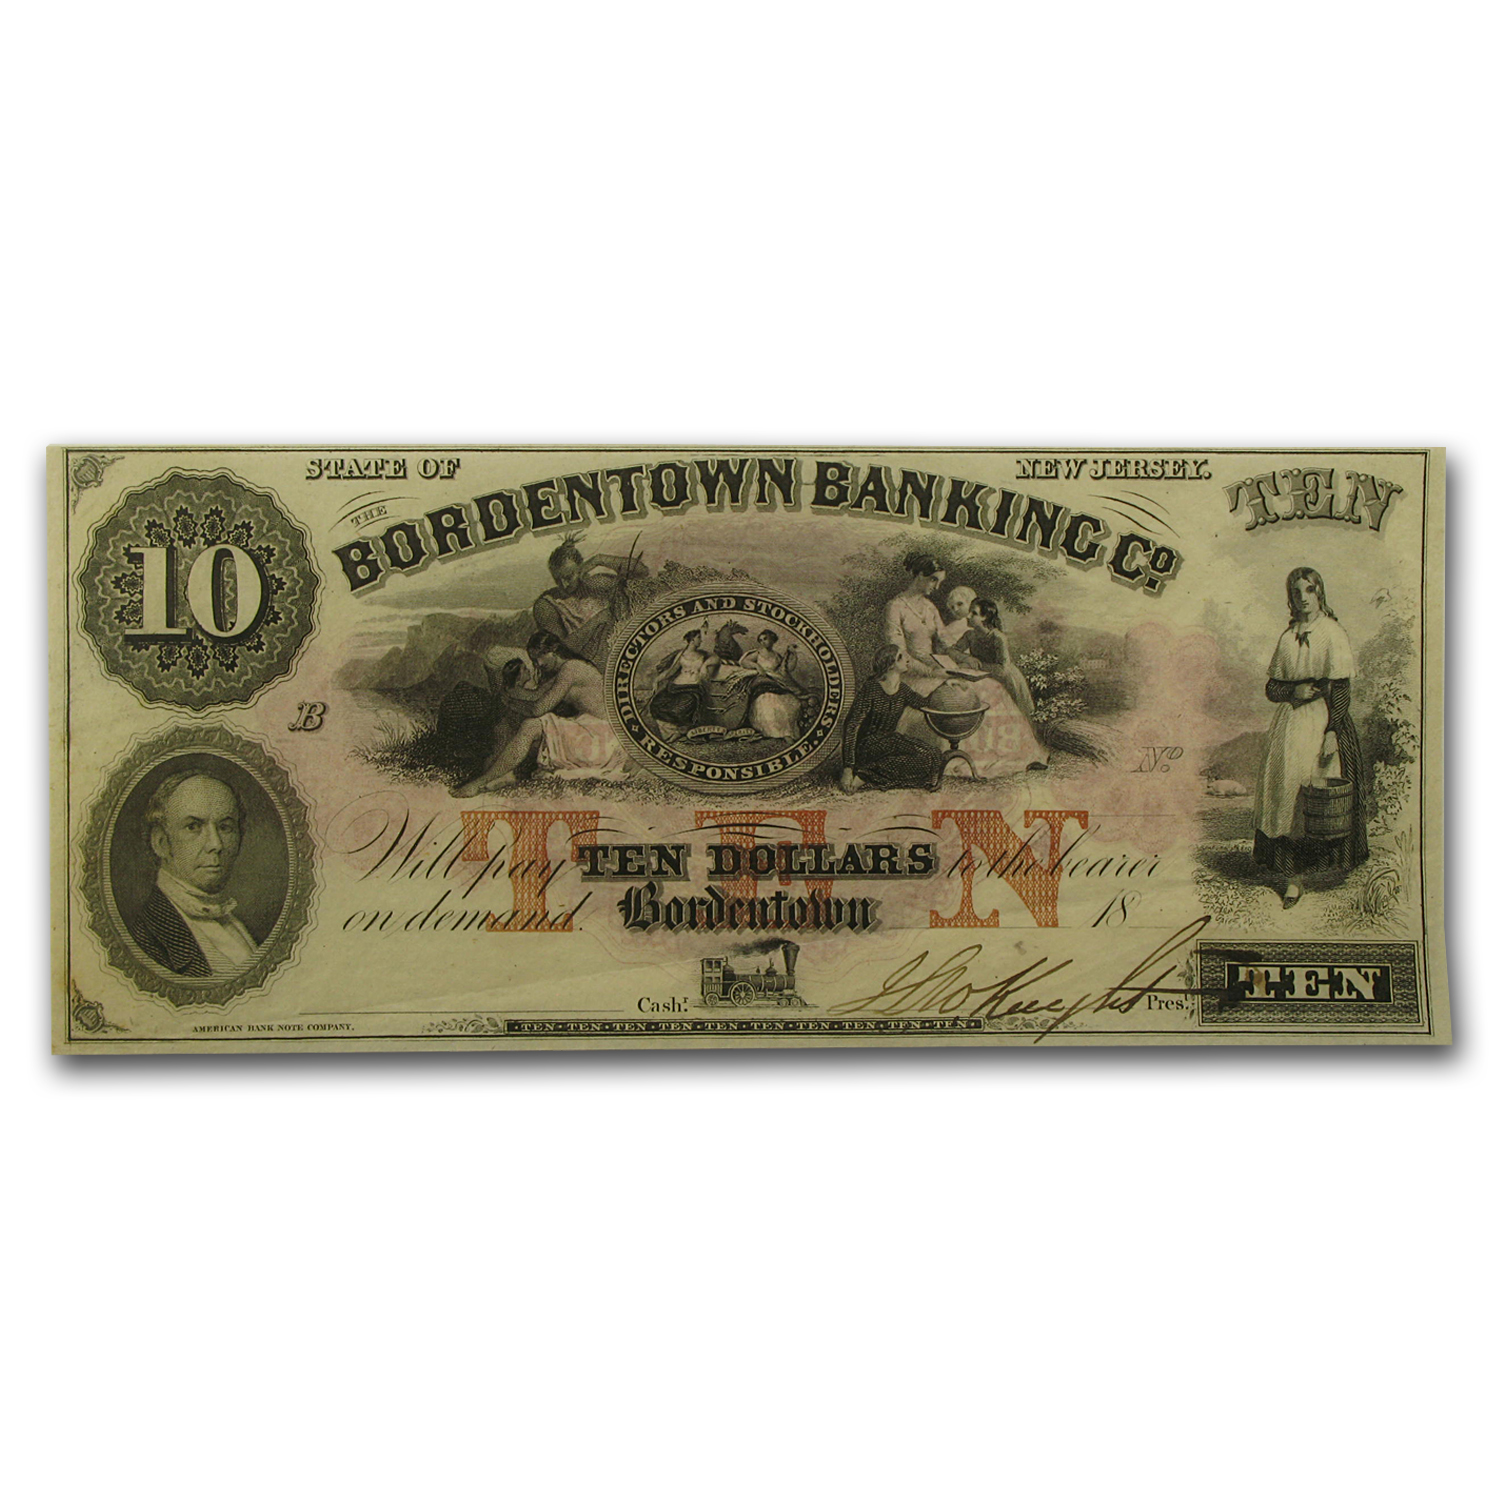 18__ Bordentown Banking Co of Bordentown, New Jersey $10 AU